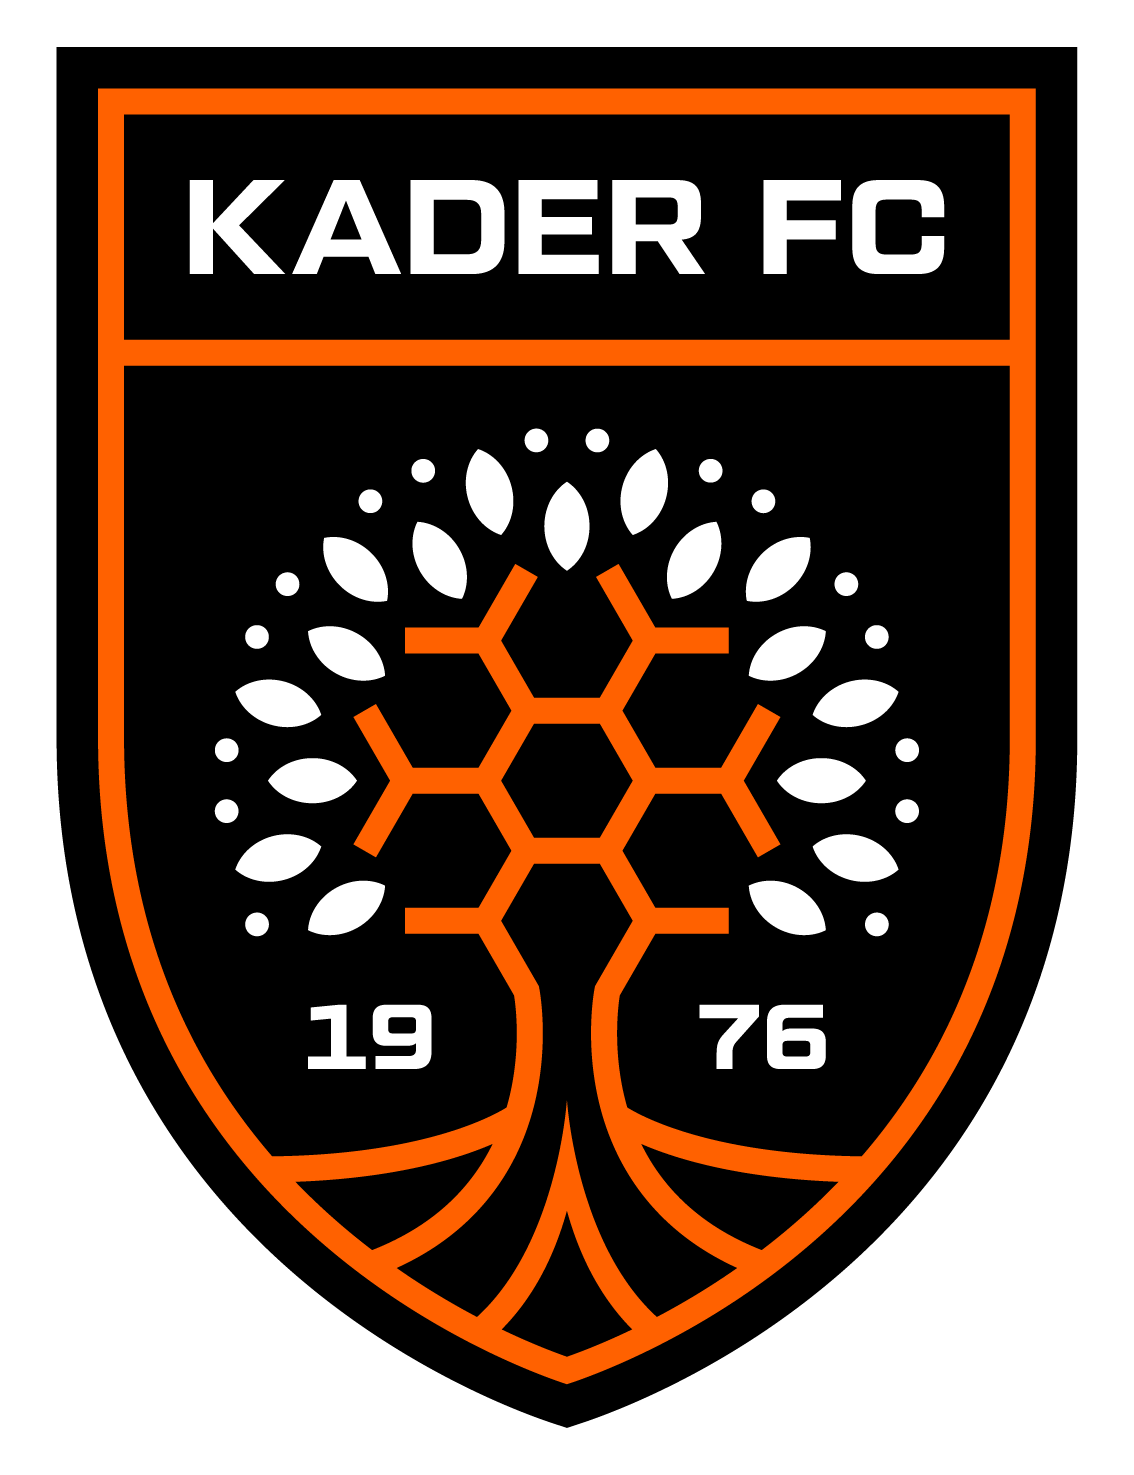 Kader Football Club